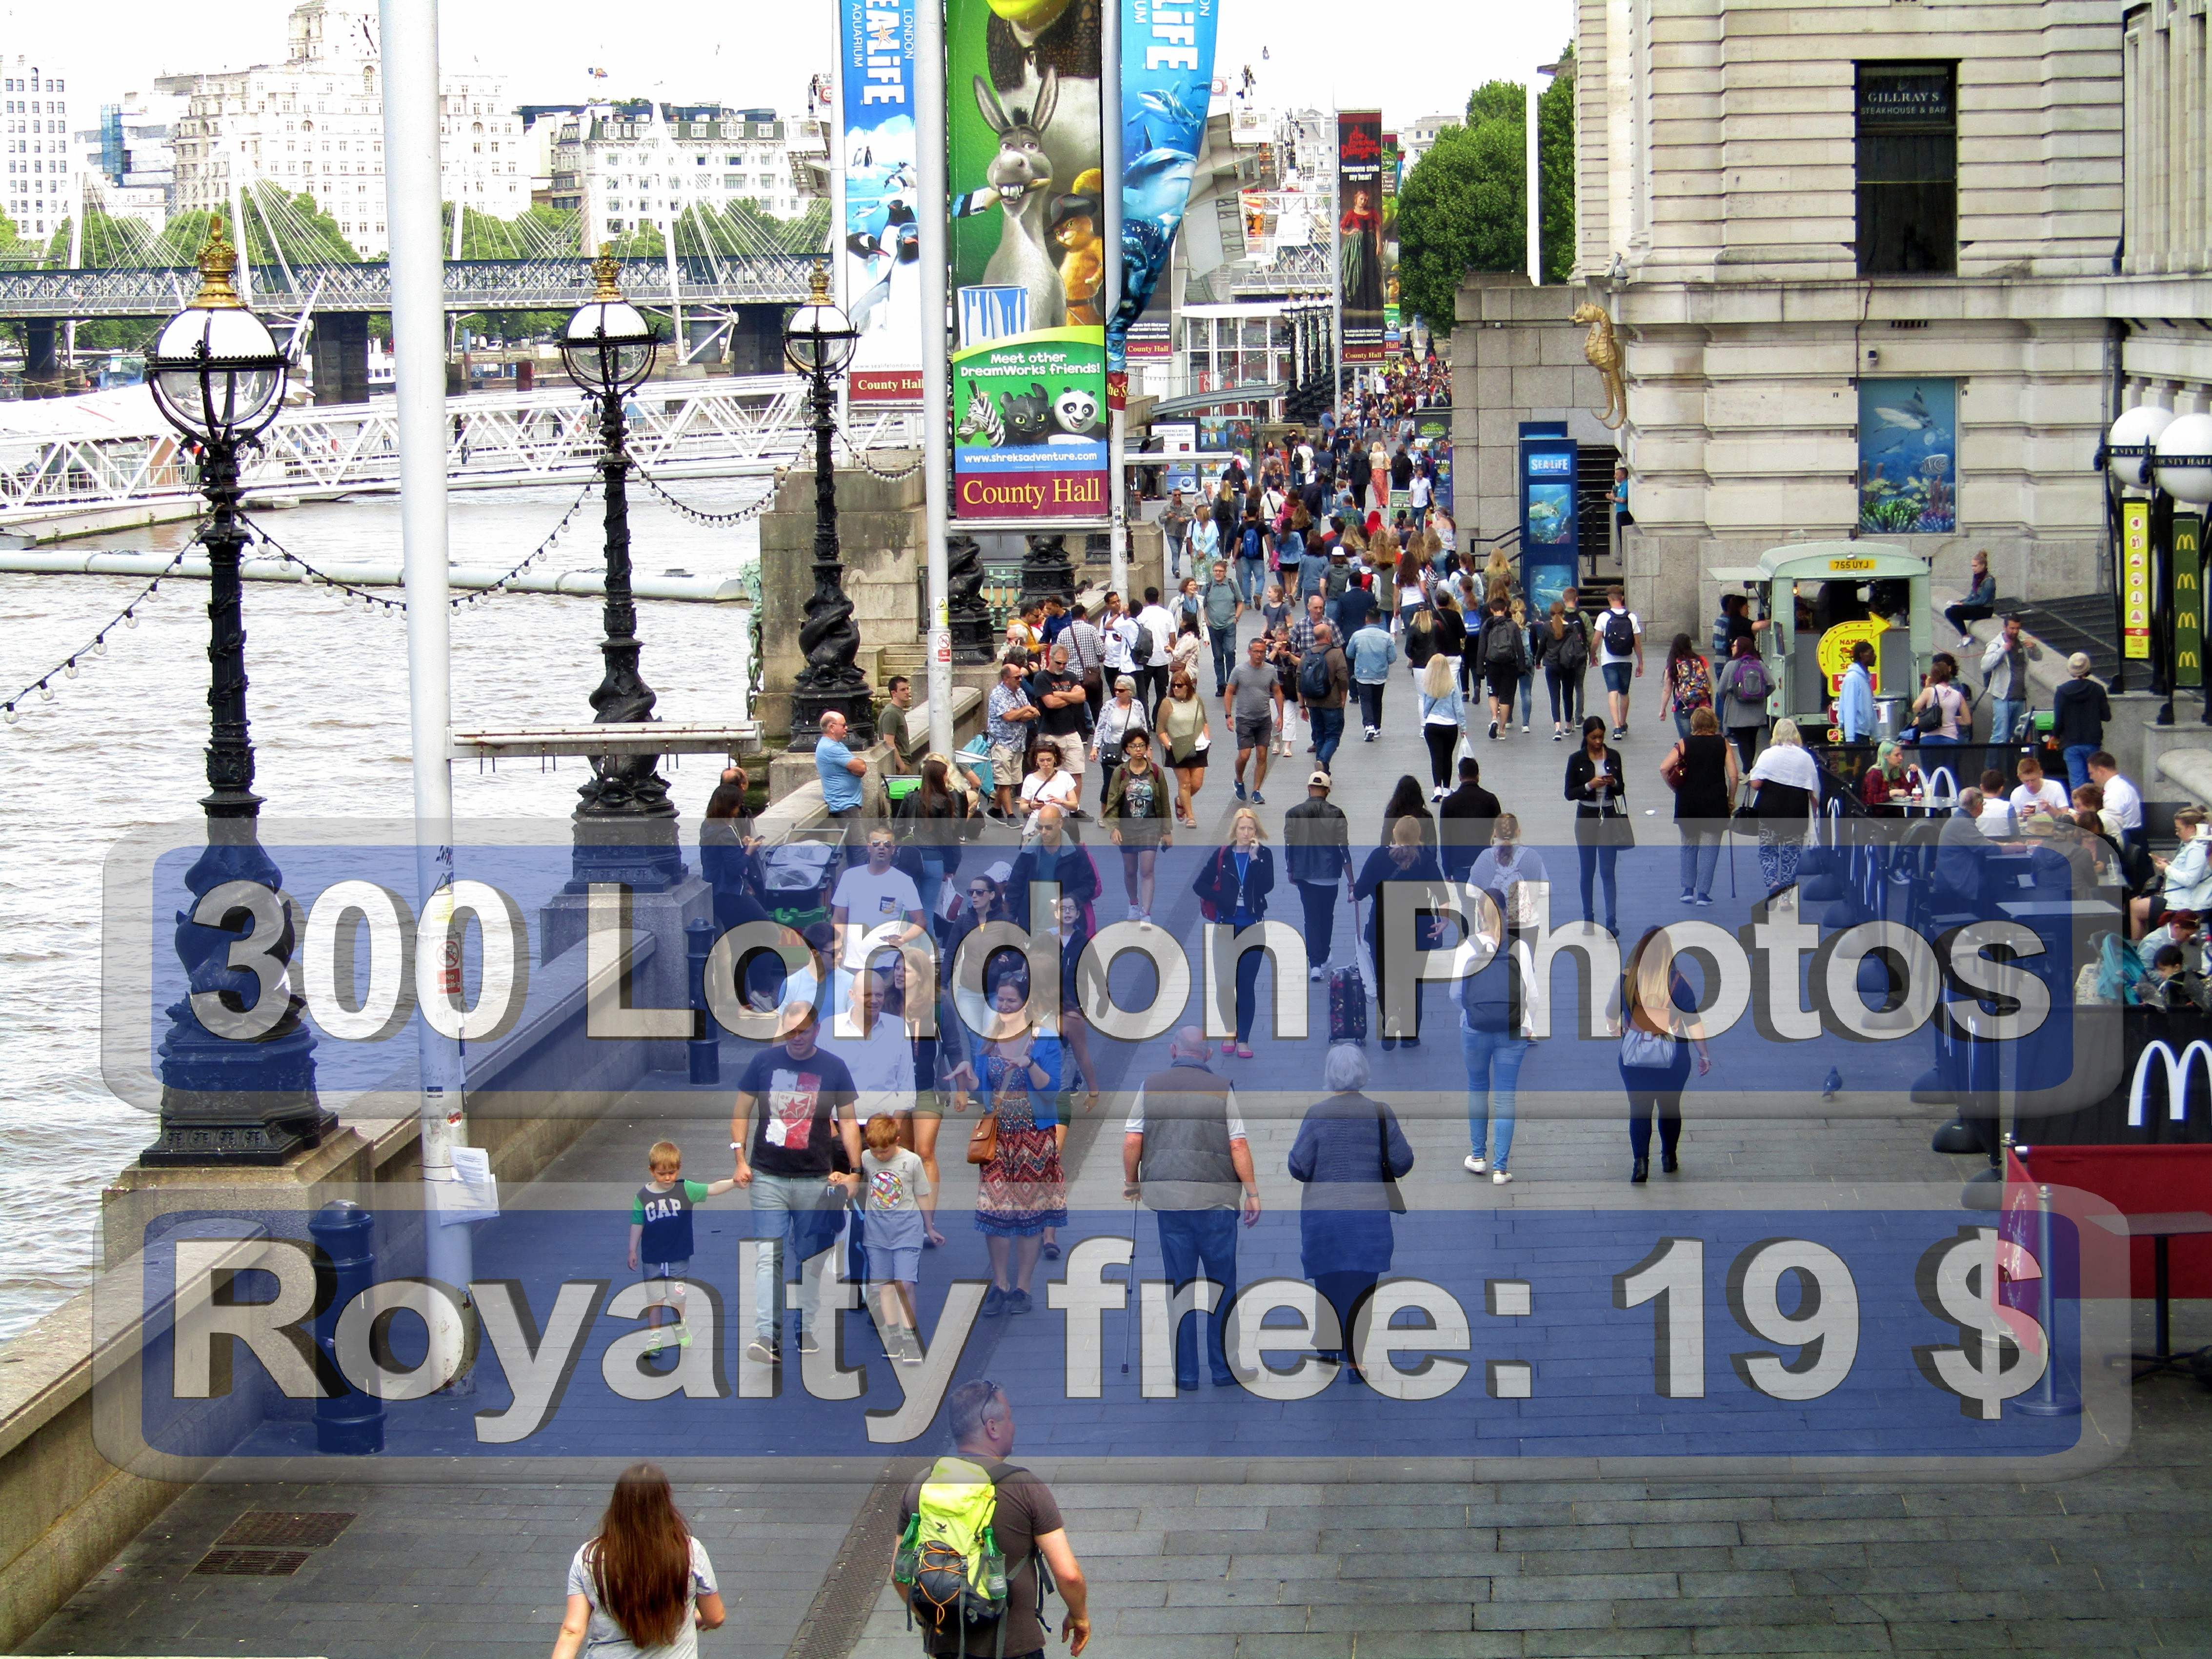 London Photo Competition